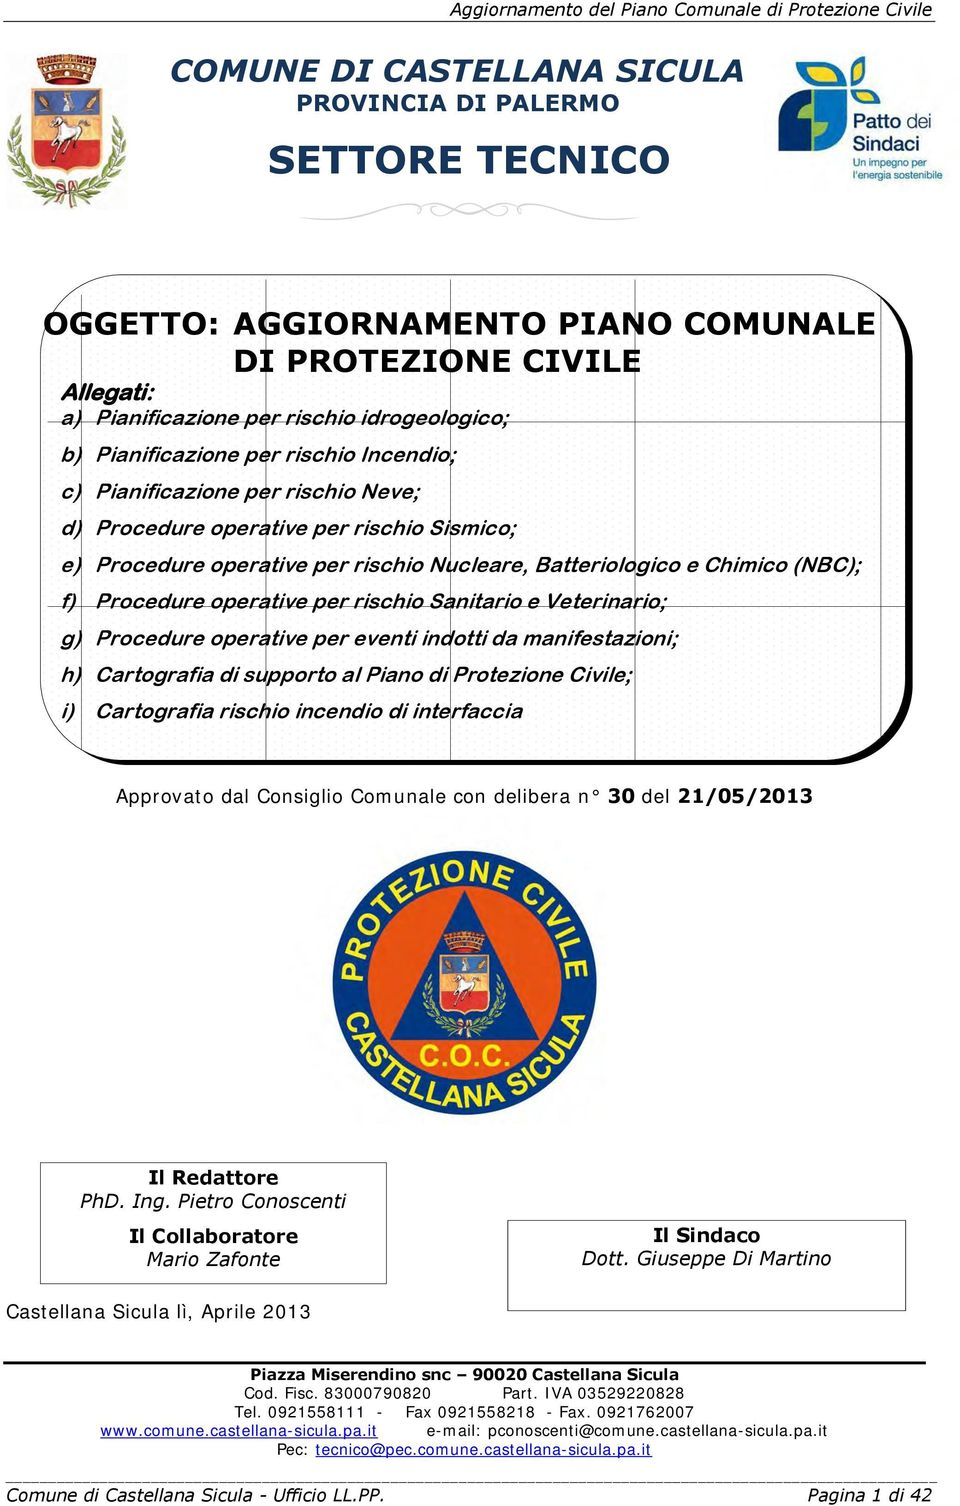 Nucleare, Batteriologico e Chimico (NBC); f) Procedure operative per rischio Sanitario e Veterinario; g) Procedure operative per eventi indotti da manifestazioni; h) Cartografia di supporto al Piano